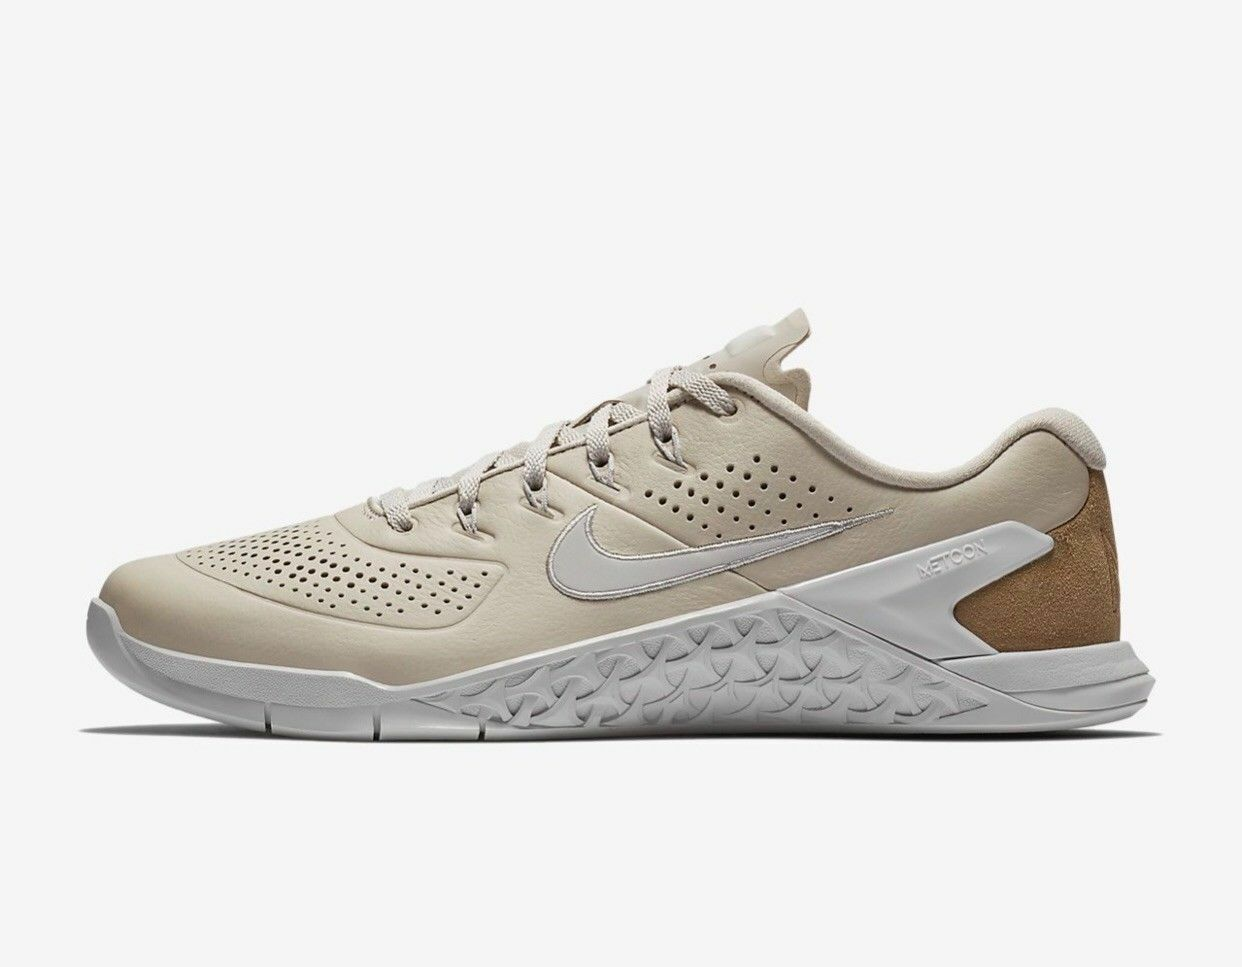 NIKE METCON 4 AMP LEATHER (AQ1192 002) CROSS FIT TRAINERS UK 12-13